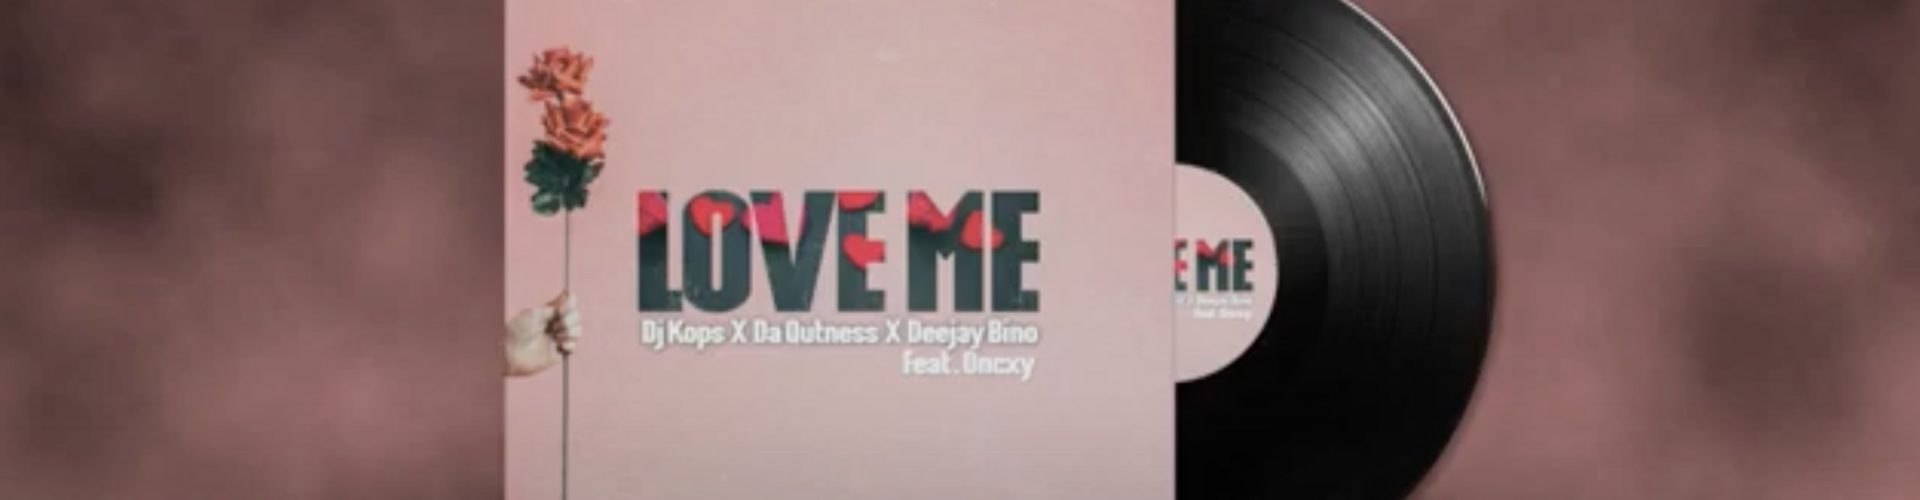 DJ KOPS's new single 'LOVE ME' is out!